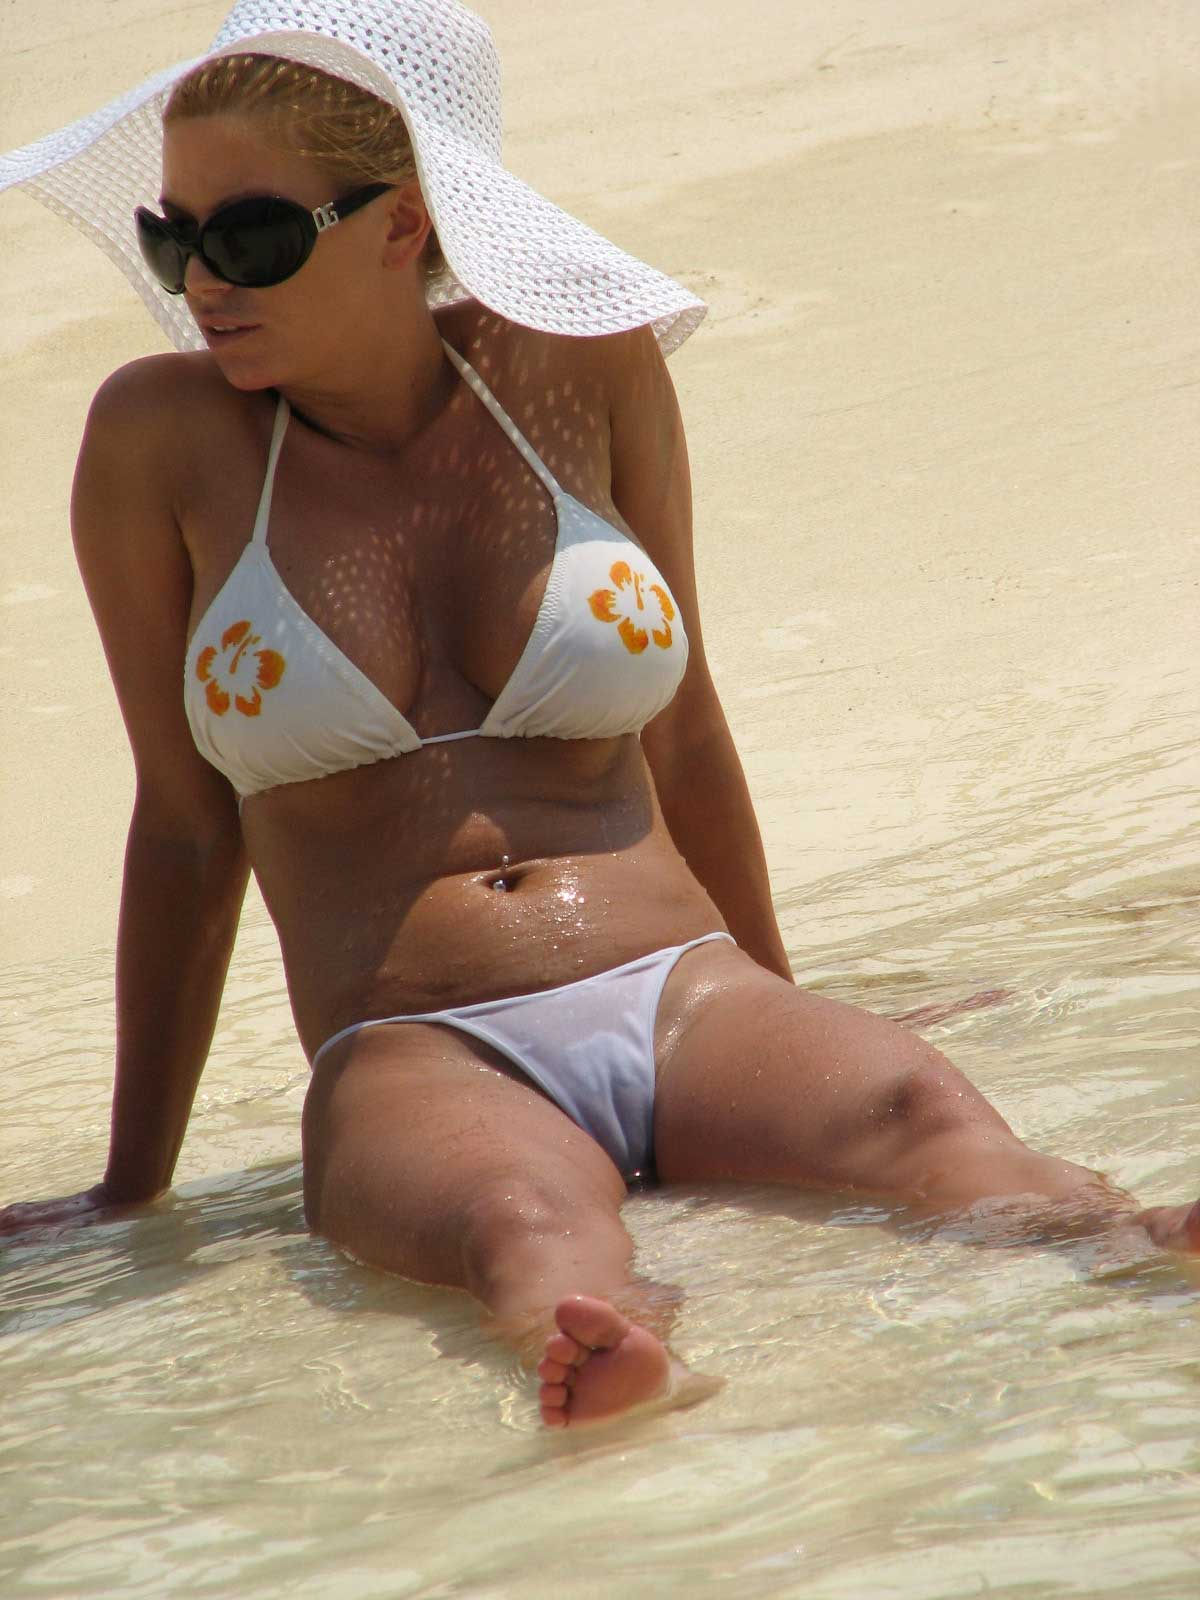 jessica simposn hot celebrity camel toe at beach in sexy white bikini